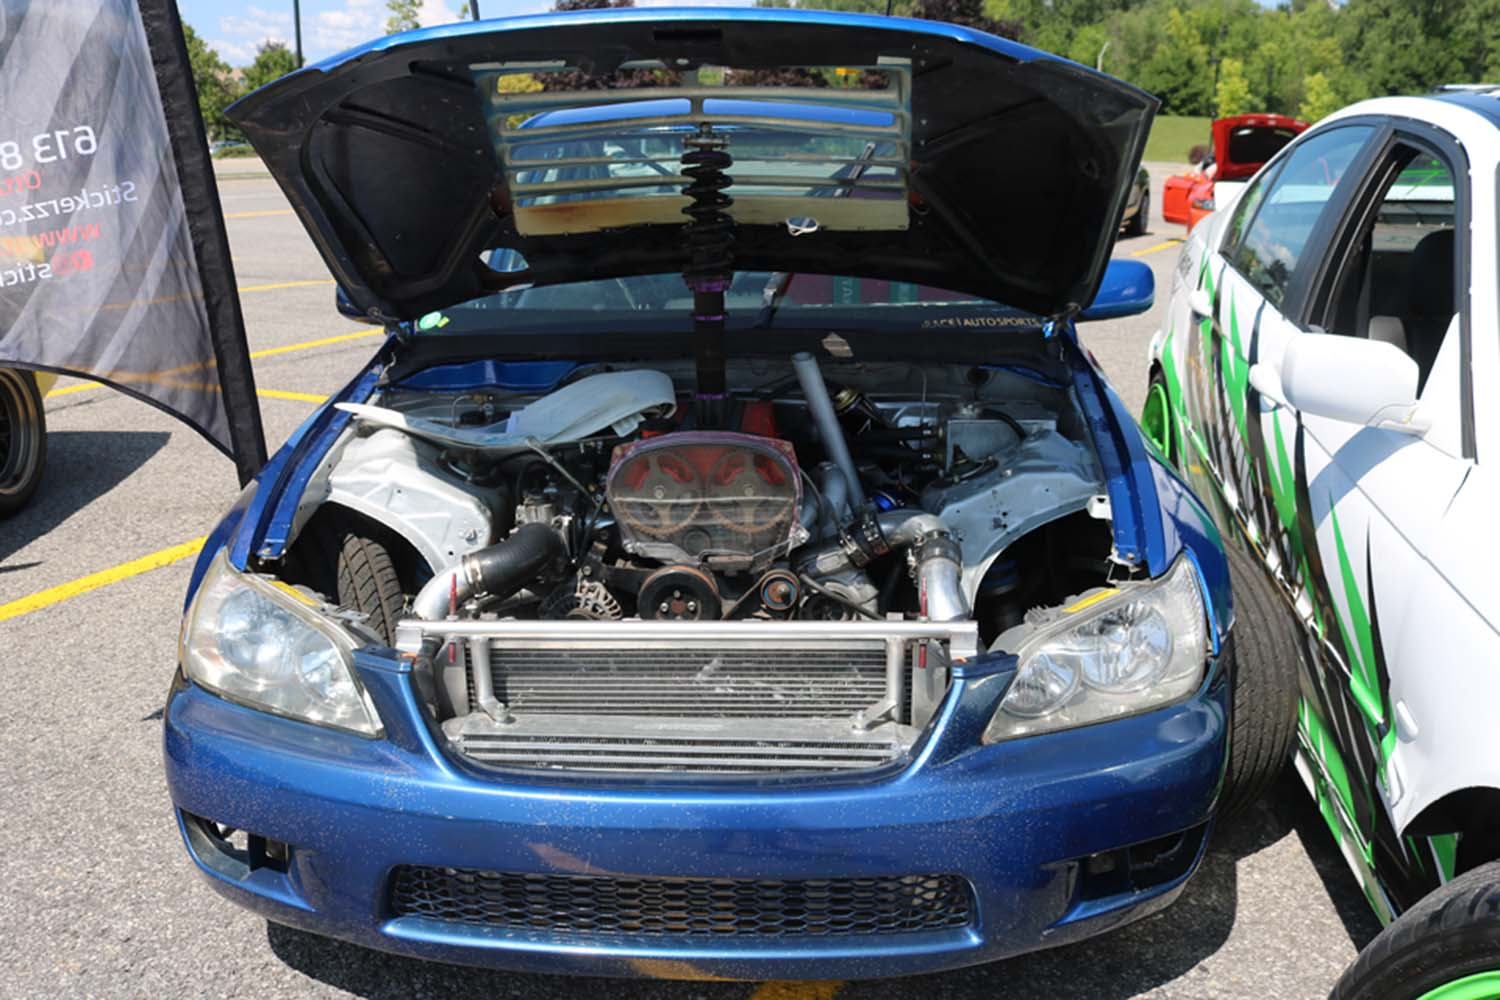 Lexus IS300 with a Turbo 4G63 – Engine Swap Depot